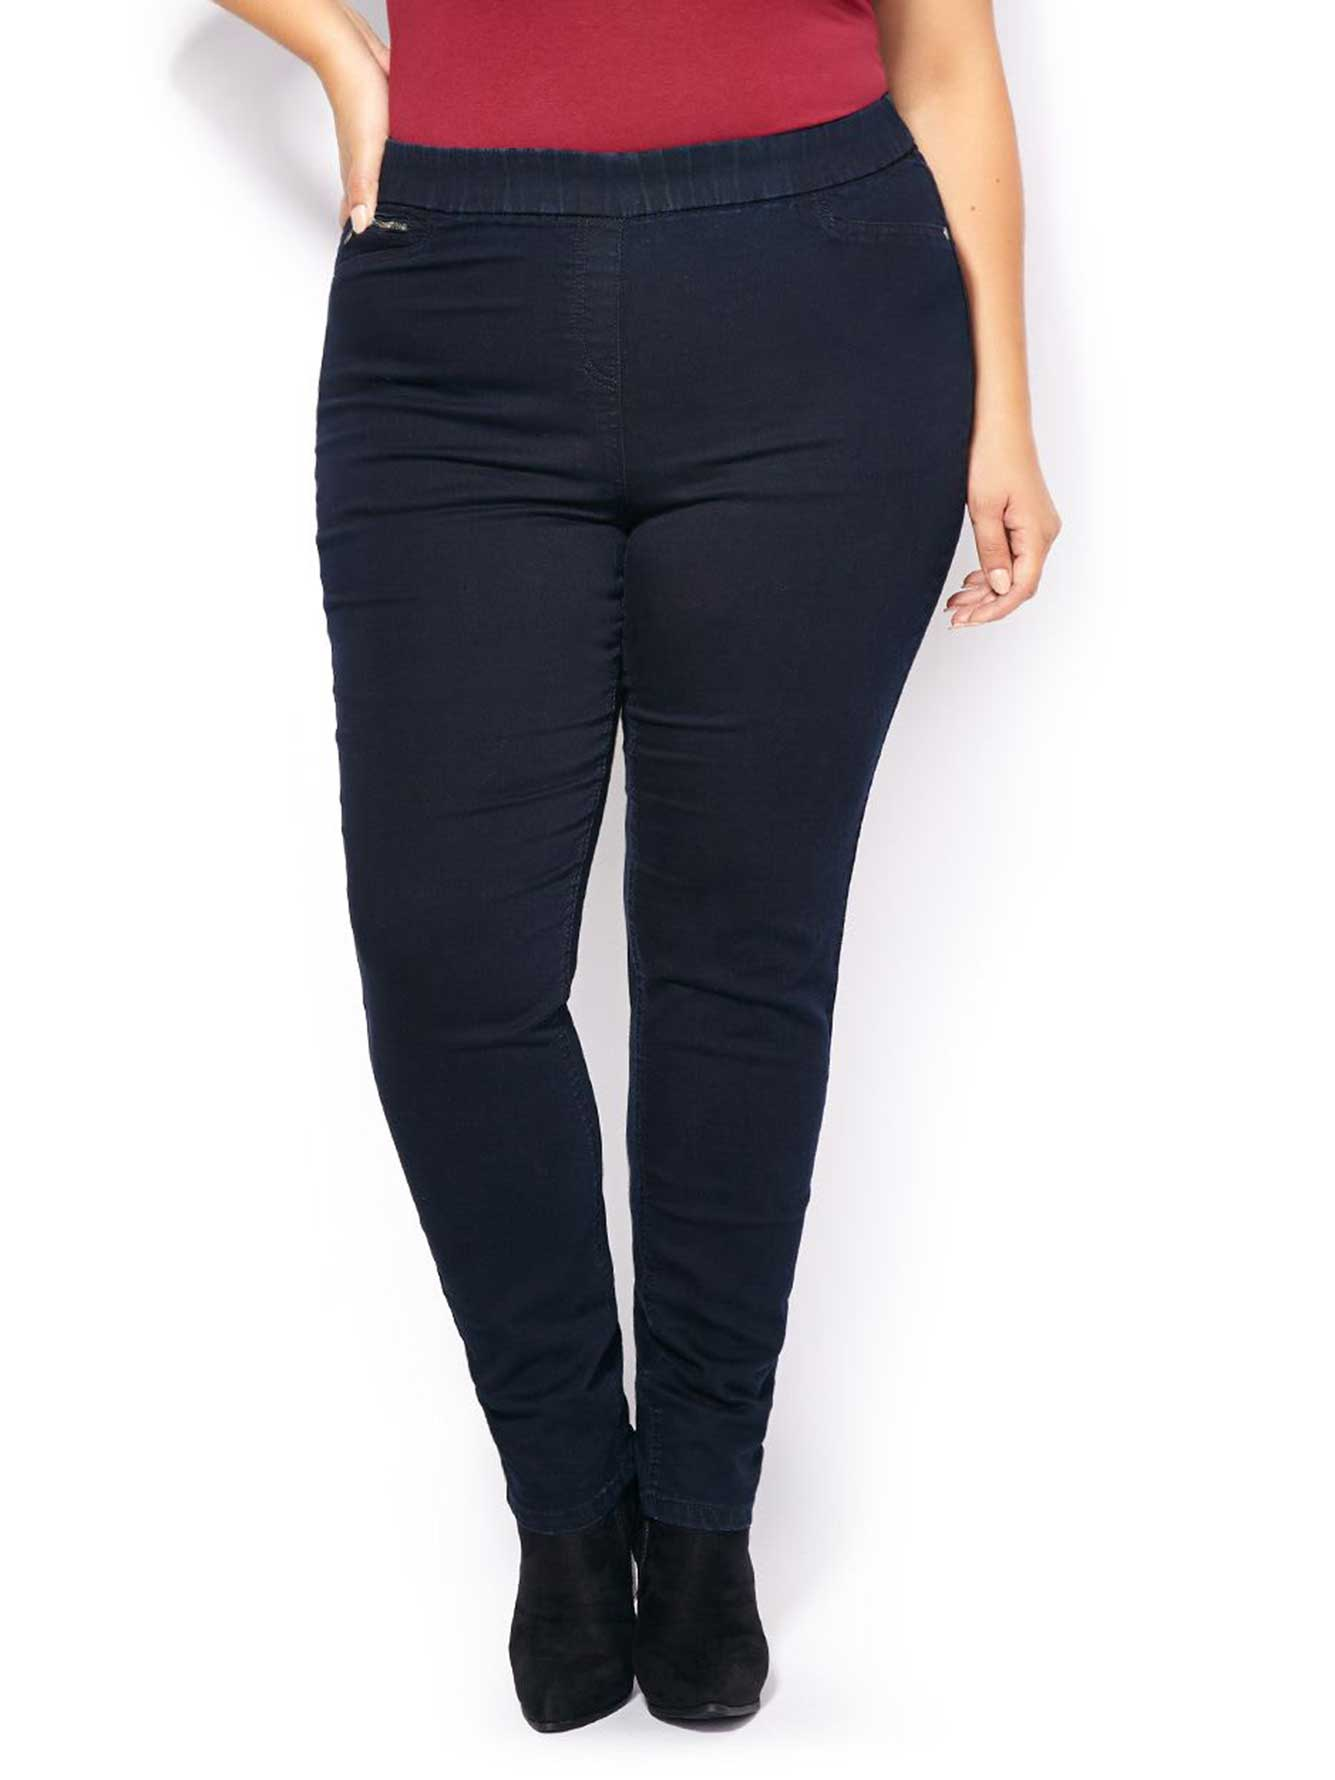 Enjoy comfort and flexibility in these skinny jeggings. Stretchy material shapes to your body and allows you to move freely. Two back pockets. Zipper closure.